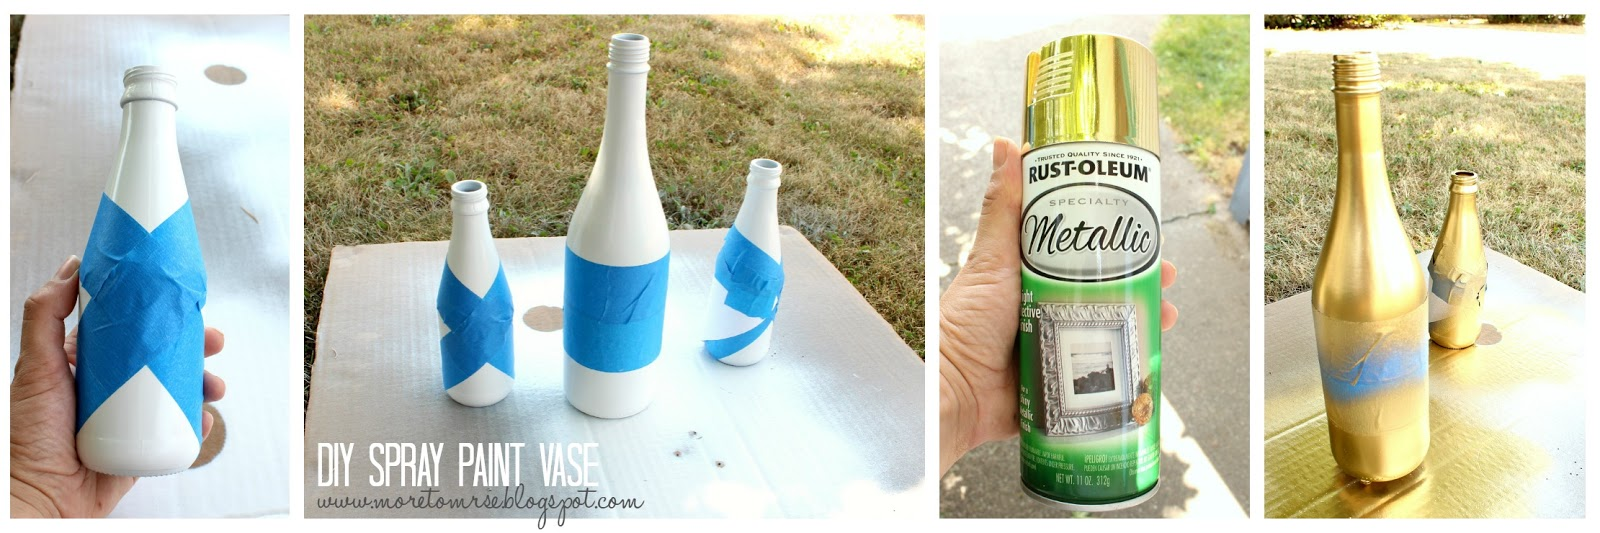 Diy spray paint vase more to mrs e when taping the vase keep in mind that you want to cover whatever you dont want to be gold go over the edges of the tape where paint will be applied with reviewsmspy